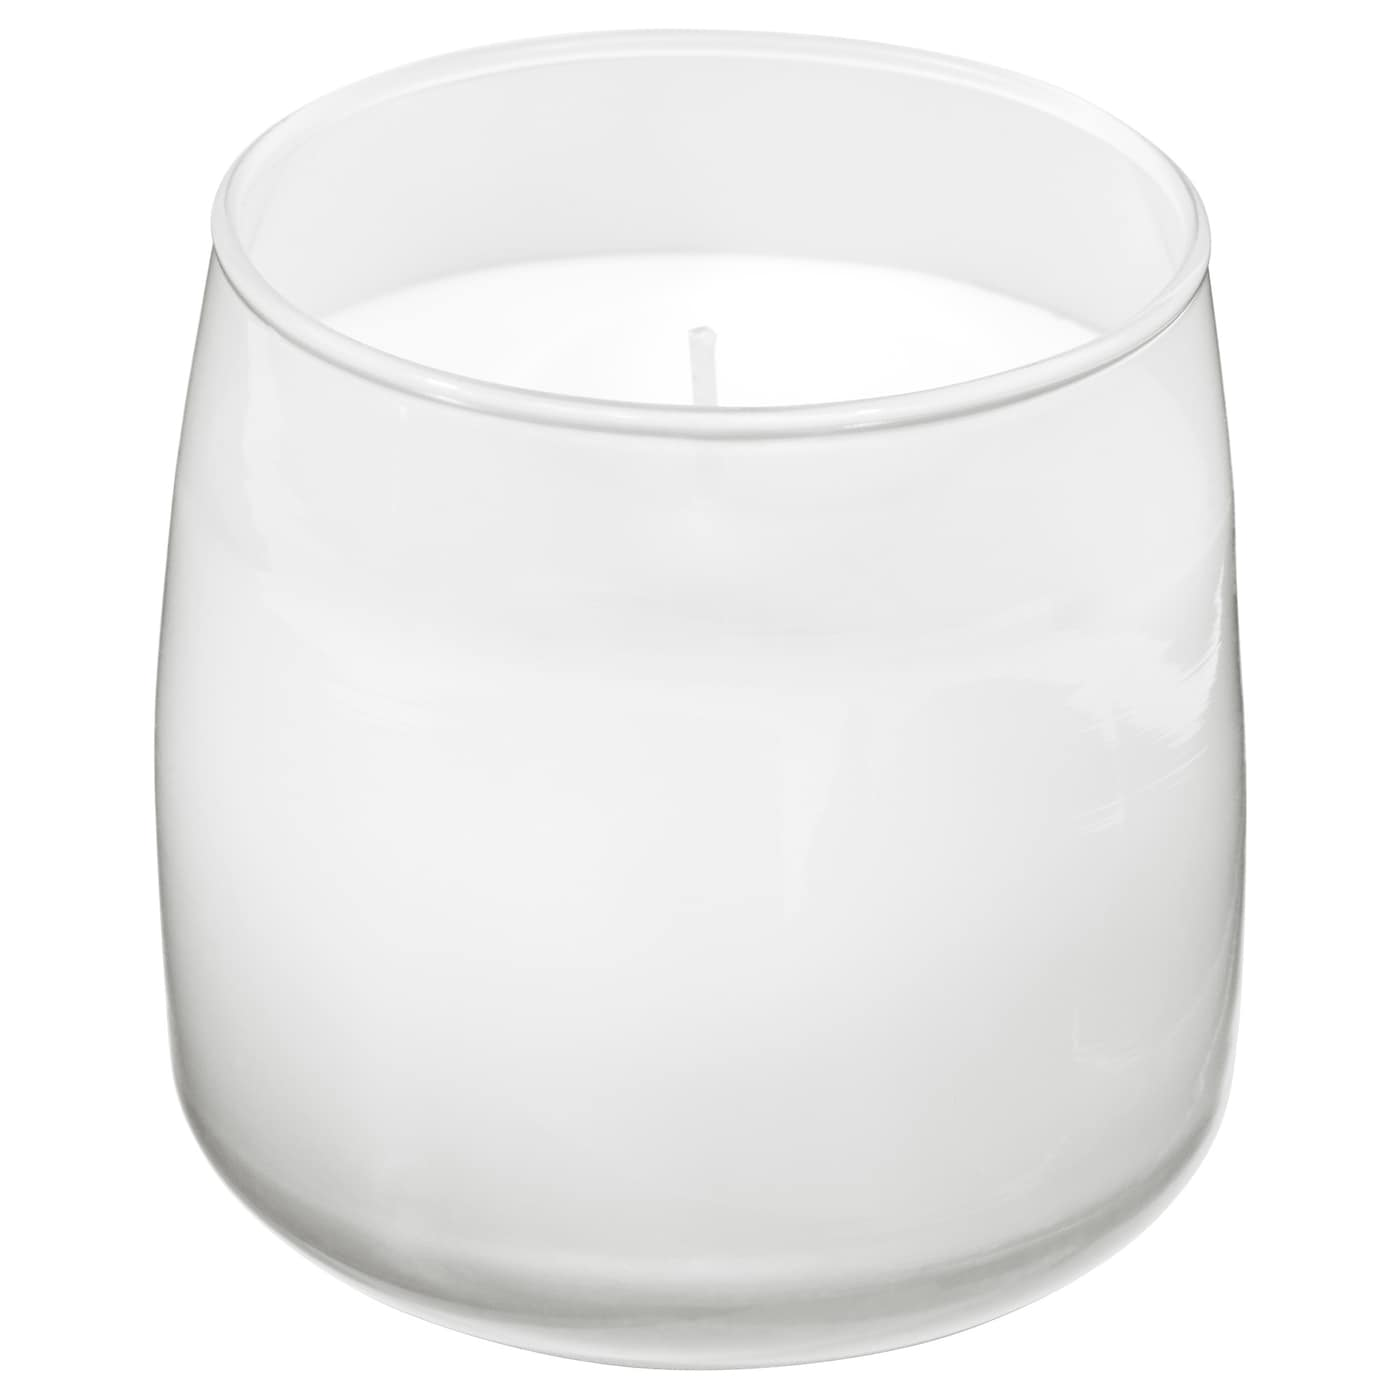 IKEA FRISKHET scented candle in glass A crisp scent of jasmine and sandalwood.